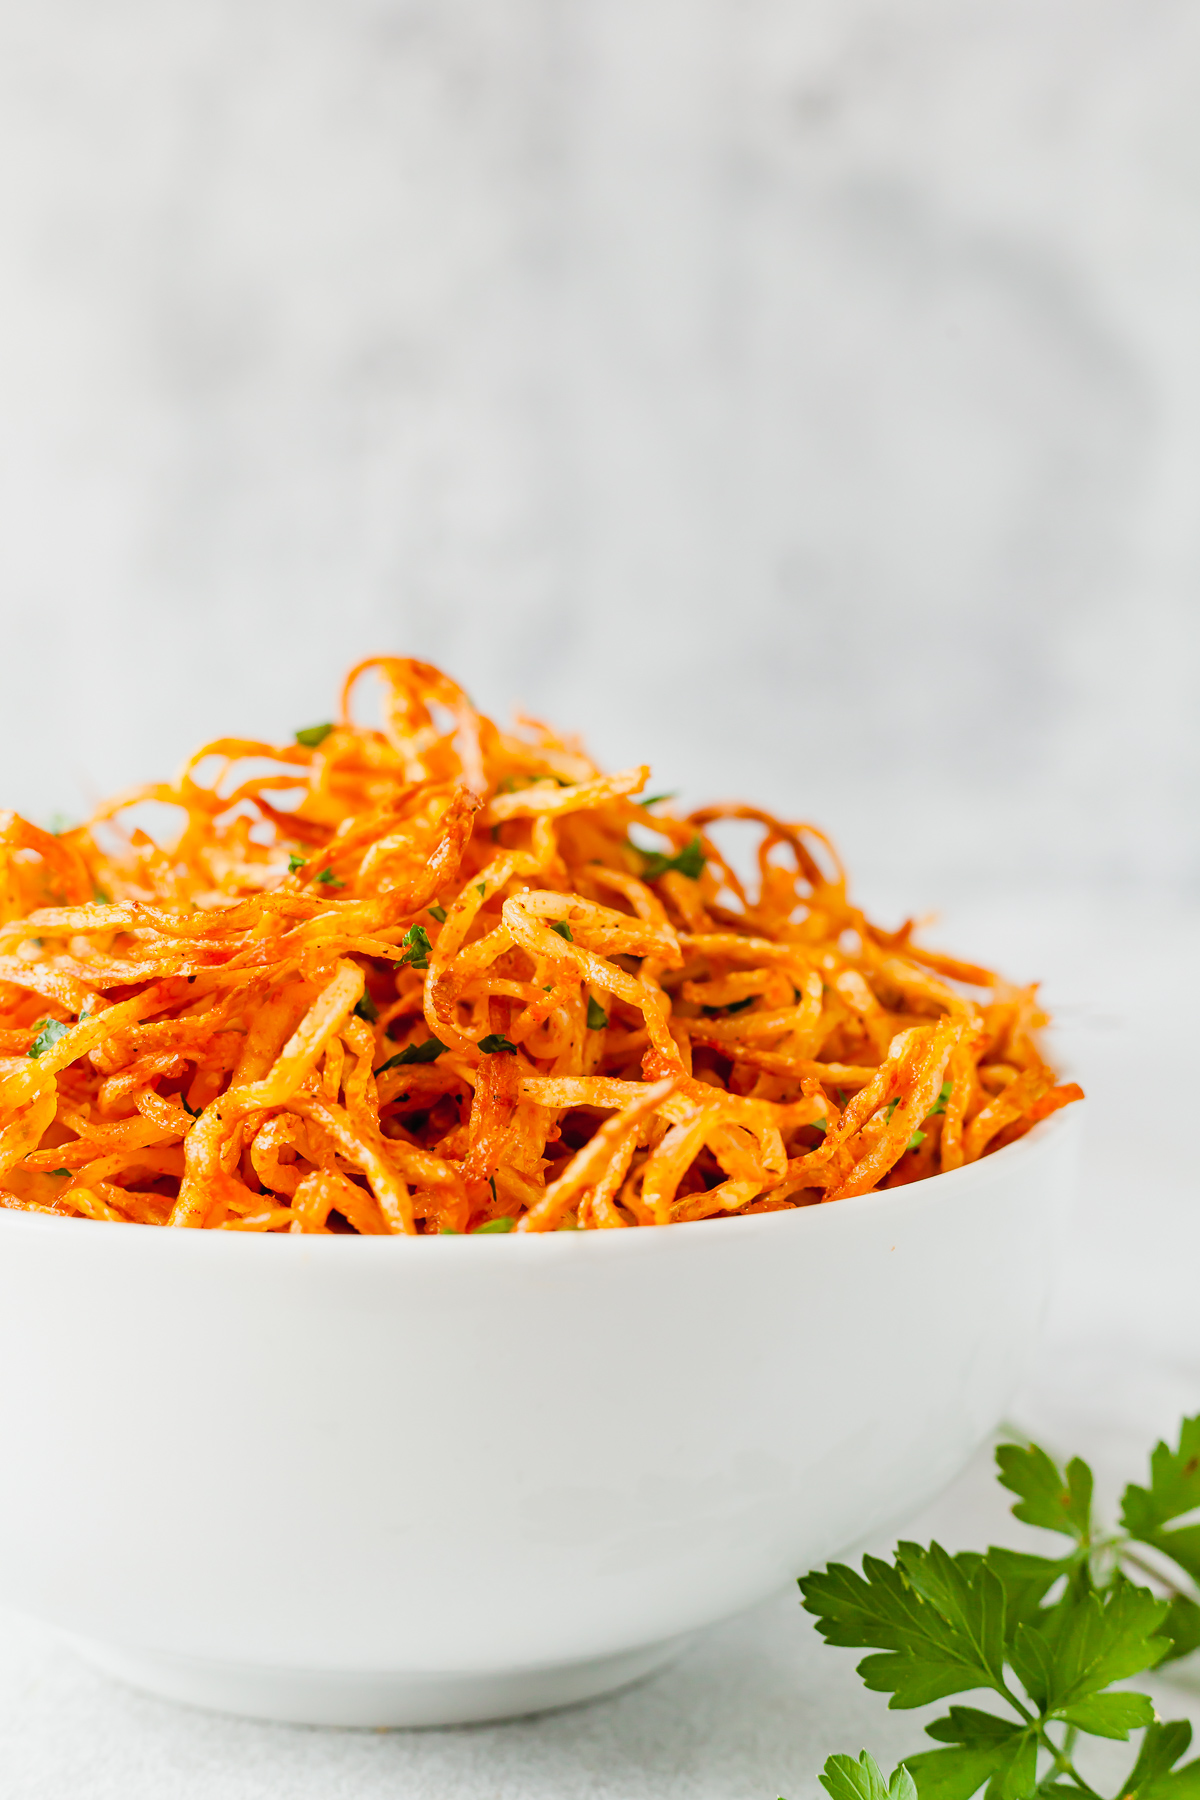 close up photo of shoestring fries in a white bowl